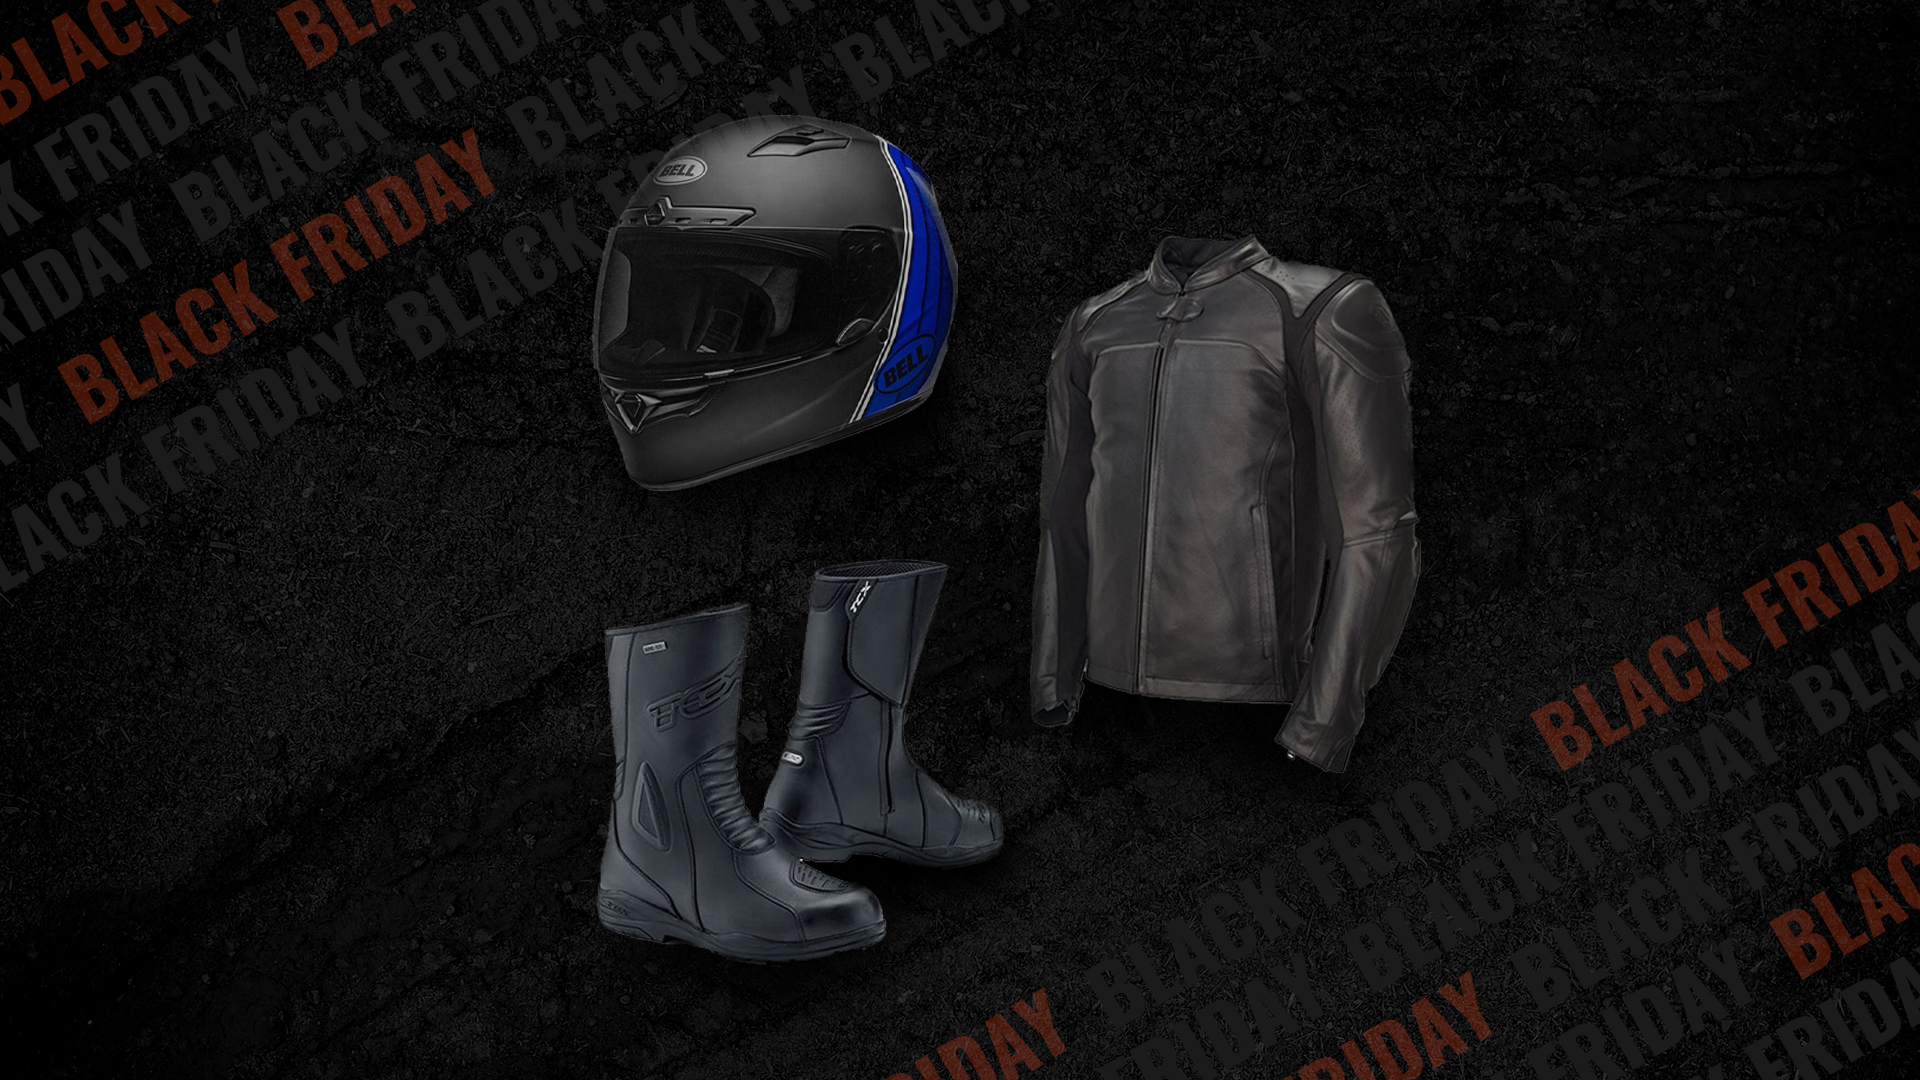 2020 black friday powersports deals